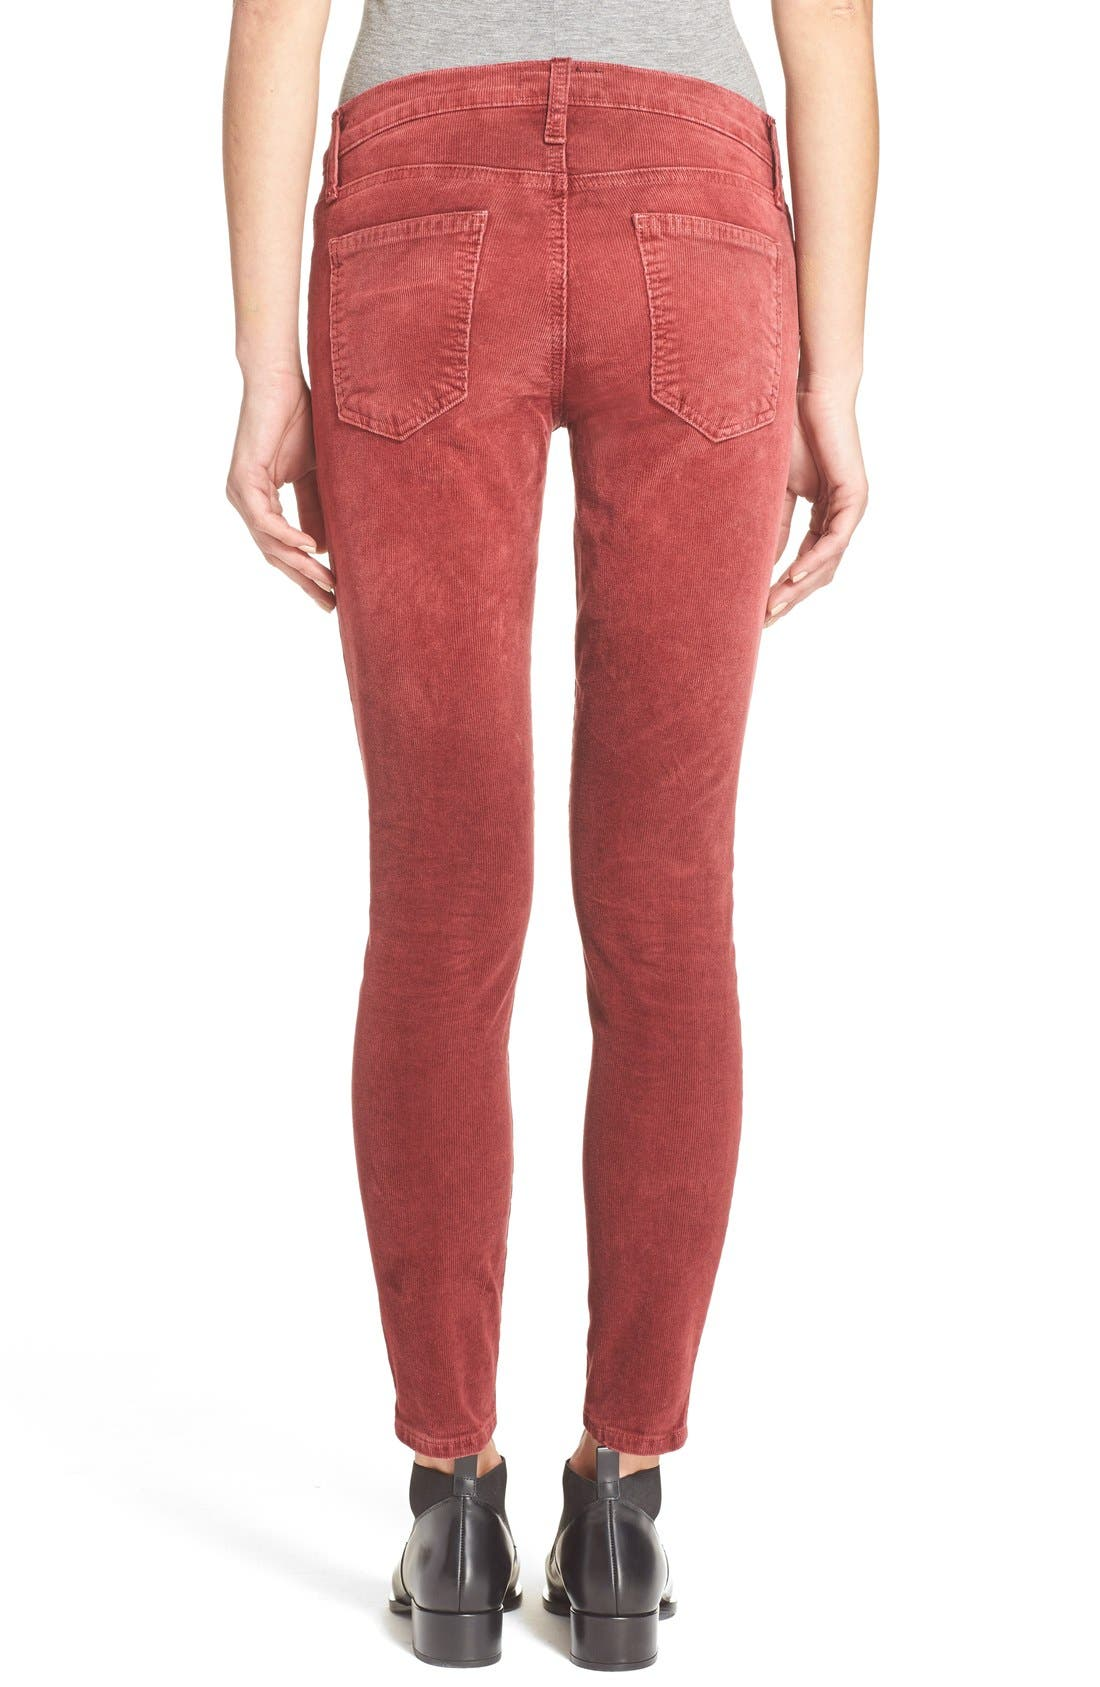 CURRENT/ELLIOTT,                             'The Stiletto' Stretch Skinny Corduroy Pants,                             Alternate thumbnail 5, color,                             601